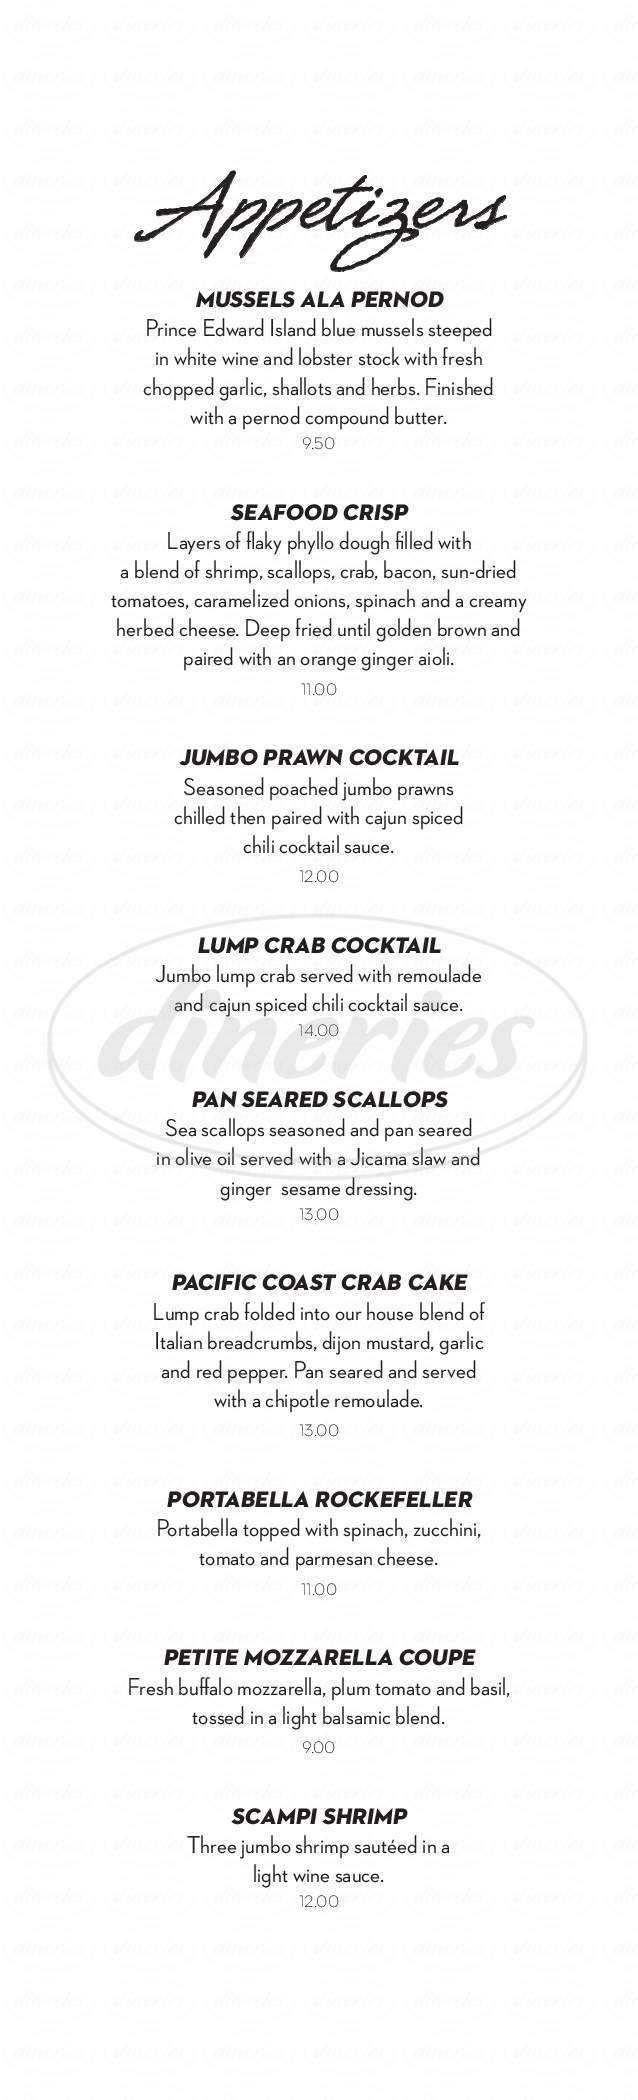 menu for Seven Rivers - Steak Seafood Spirits